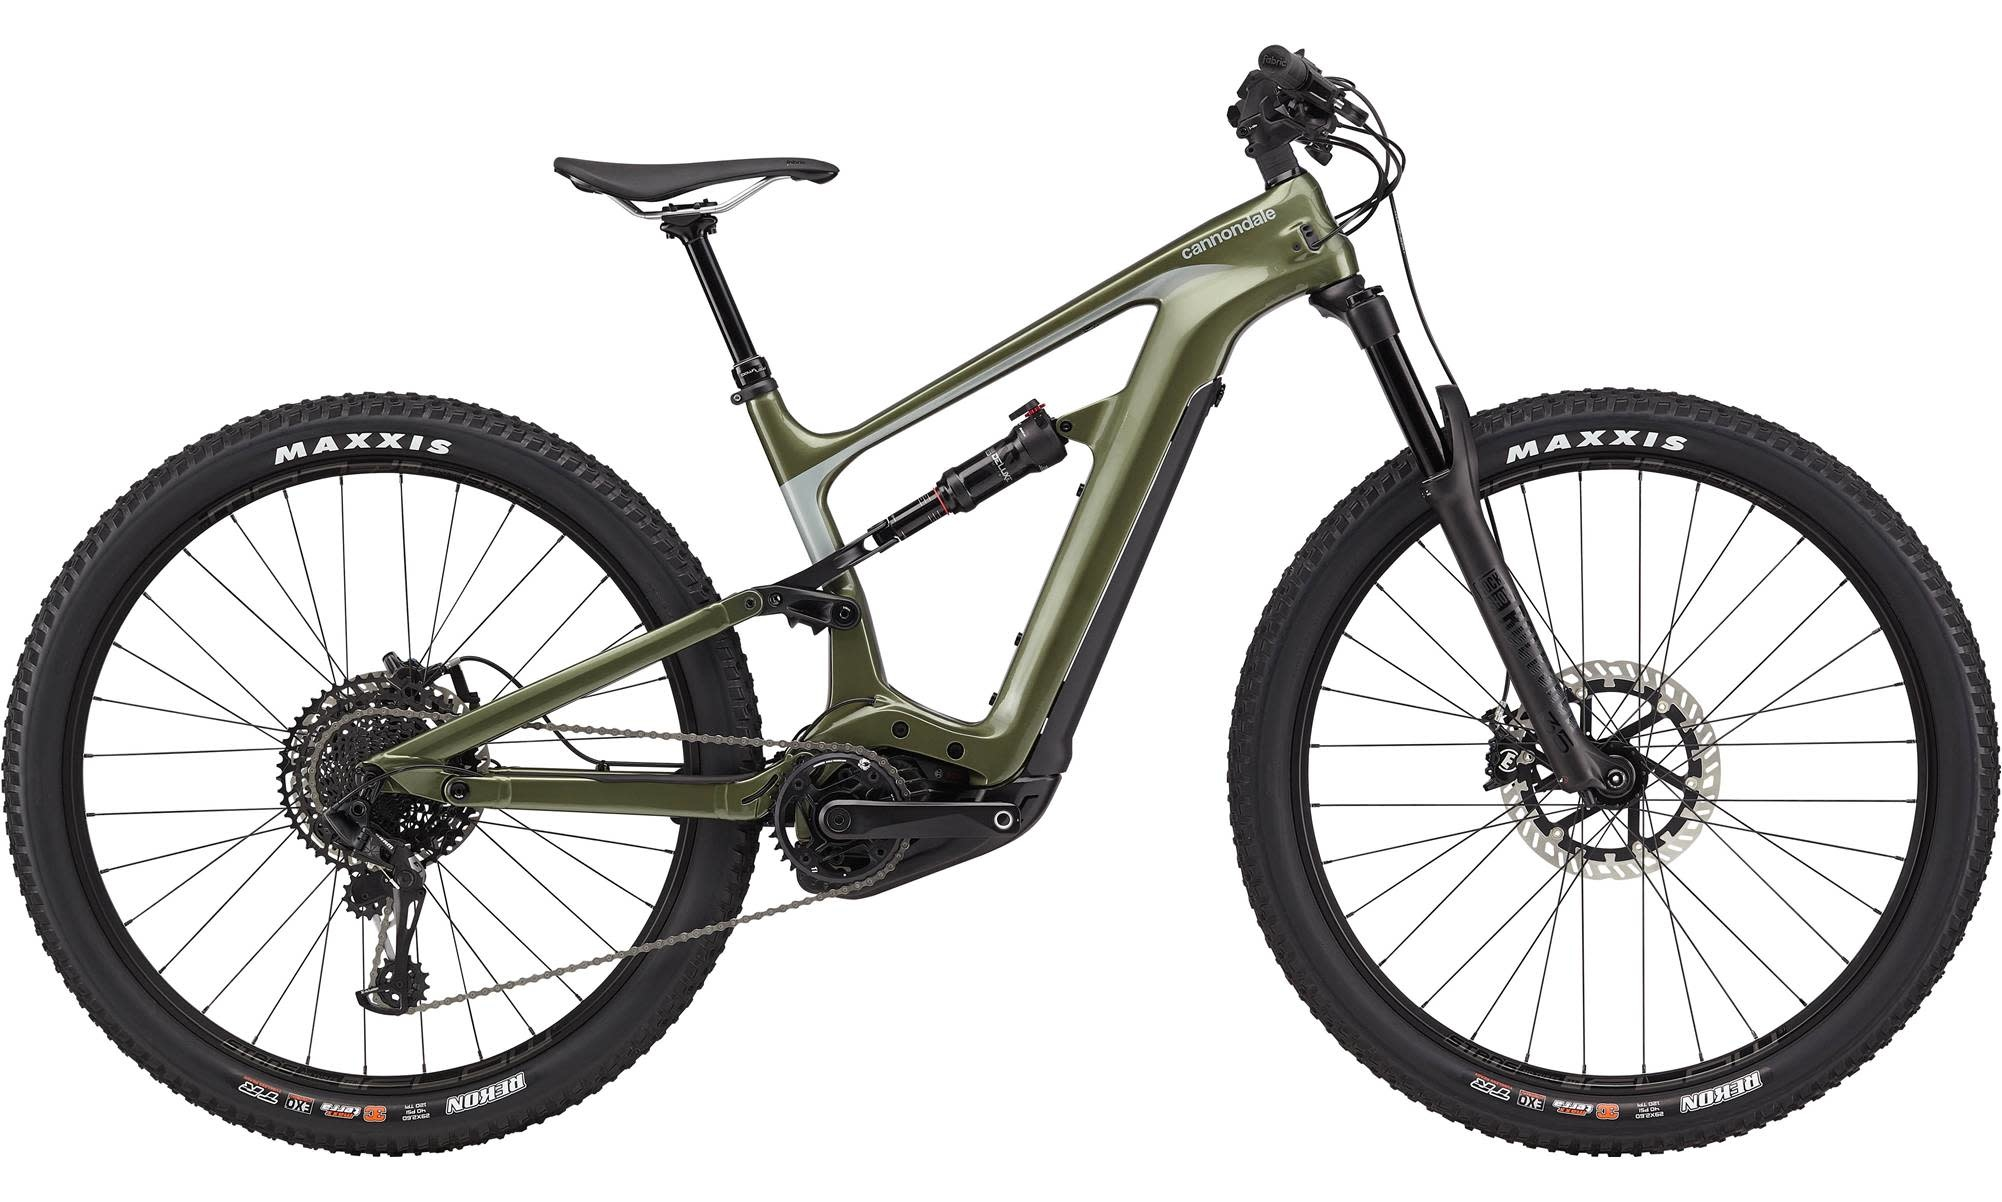 Cannondale Cannondale Habit Neo 2 Electric Mountain Bike 2020